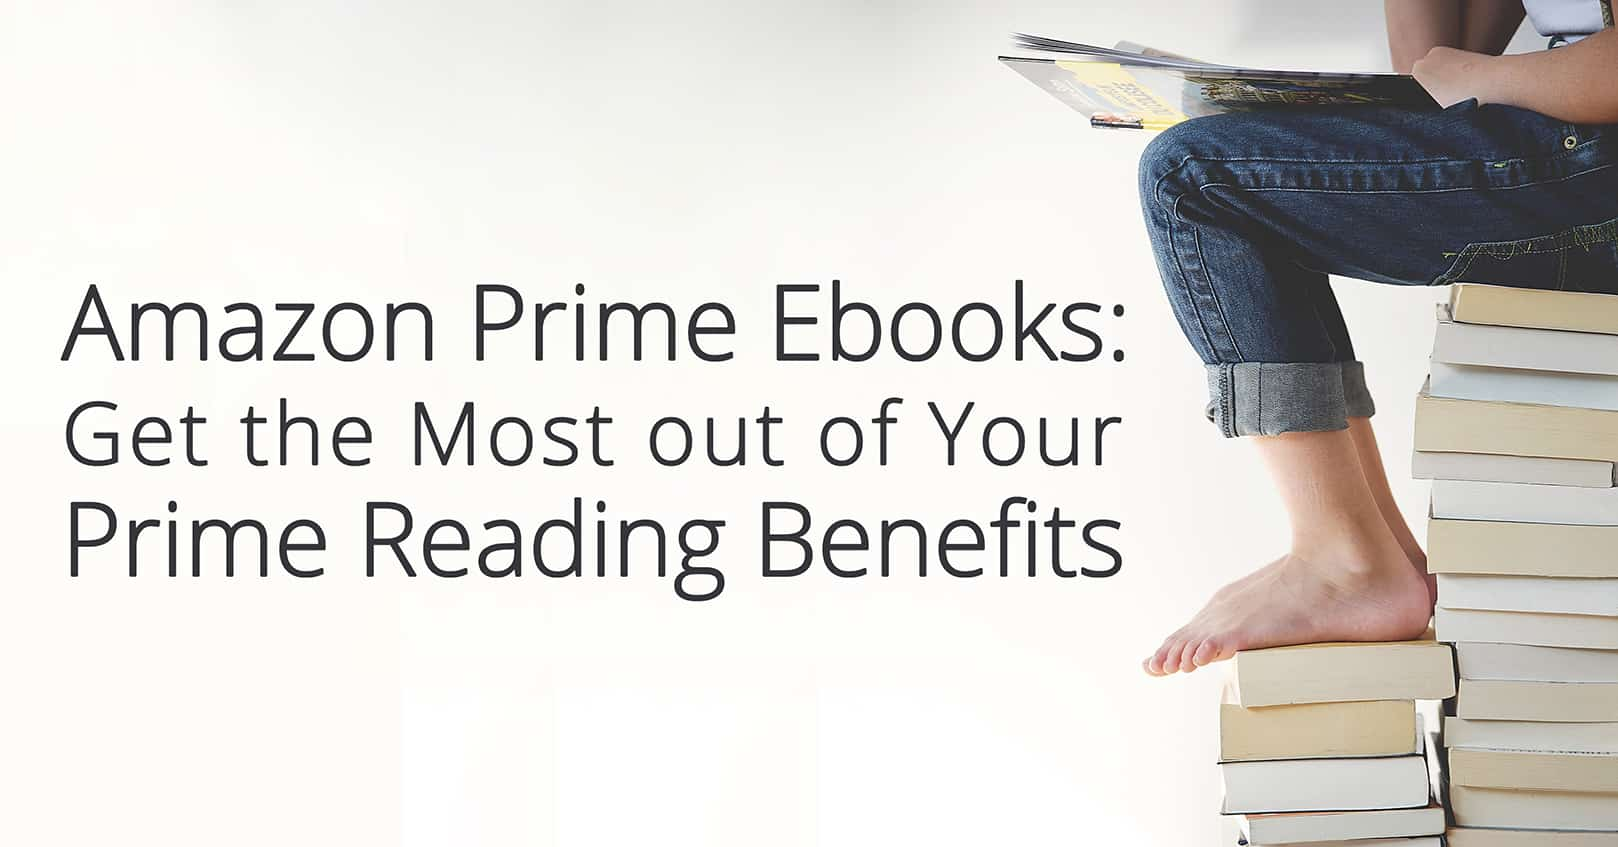 amazon prime ebooks: Prime Reading Benefits